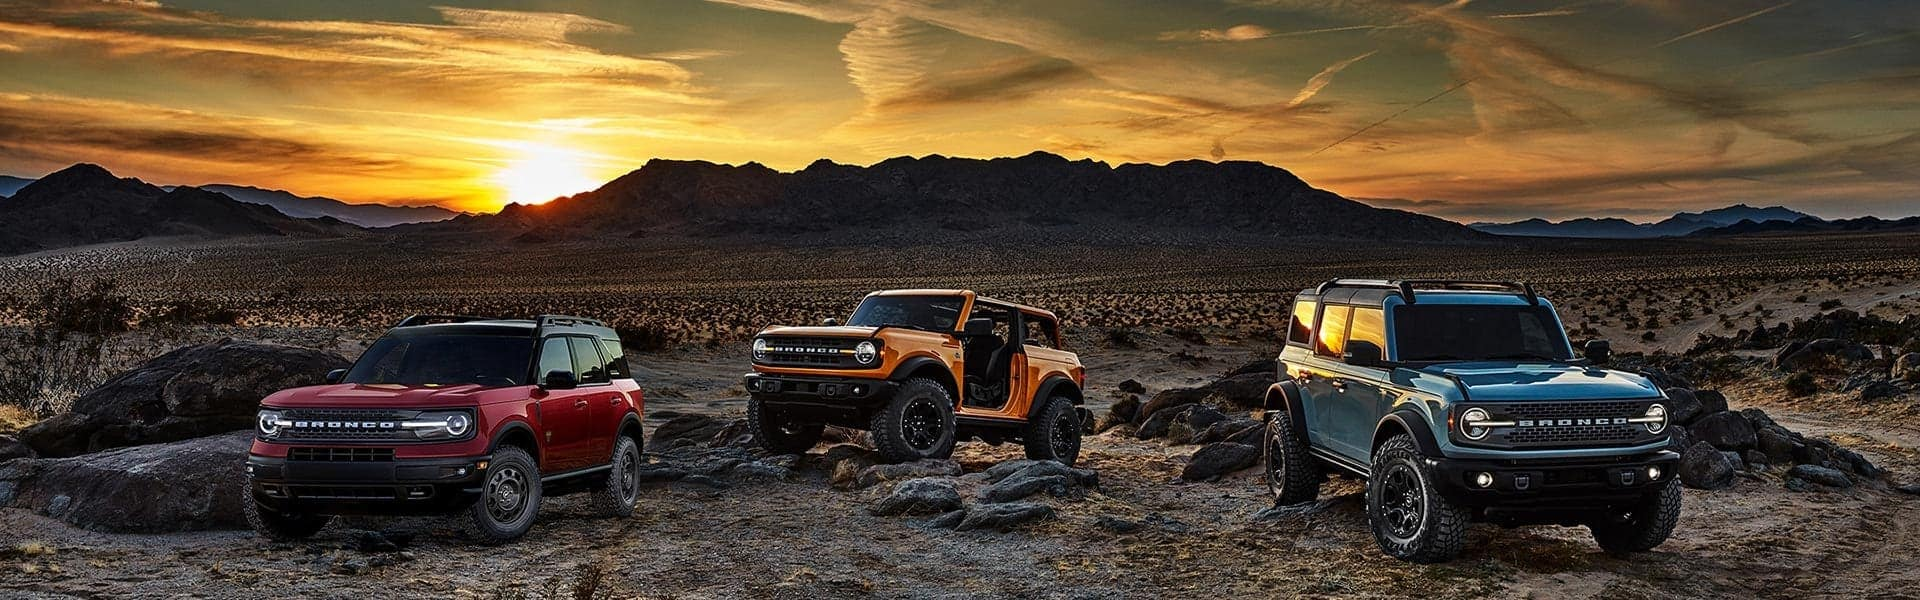 The family of 2021 Ford Broncos is shown parked in a desert at sunset, including a blue 4-door Bronco, an orang 2-door Bronco with no roof or doors, and a red Bronco Sport.